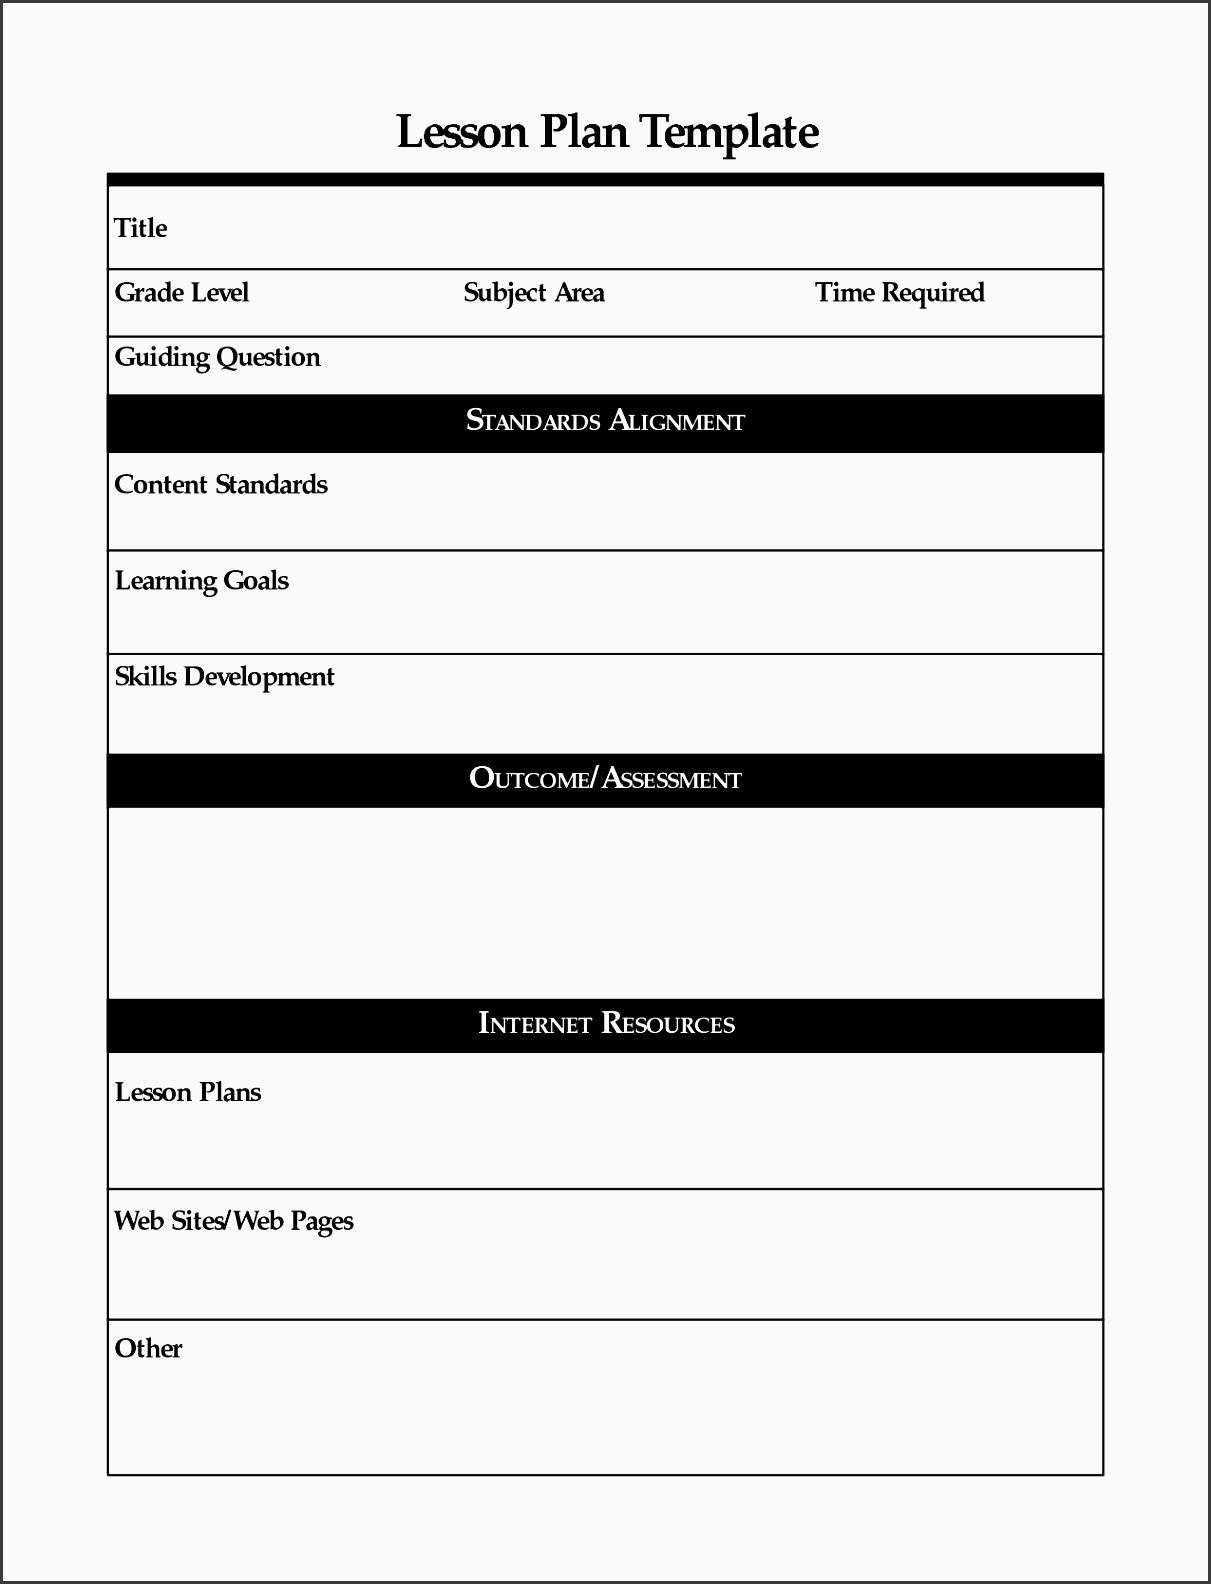 6 point lesson plan template - 9 free lesson planner template online sampletemplatess